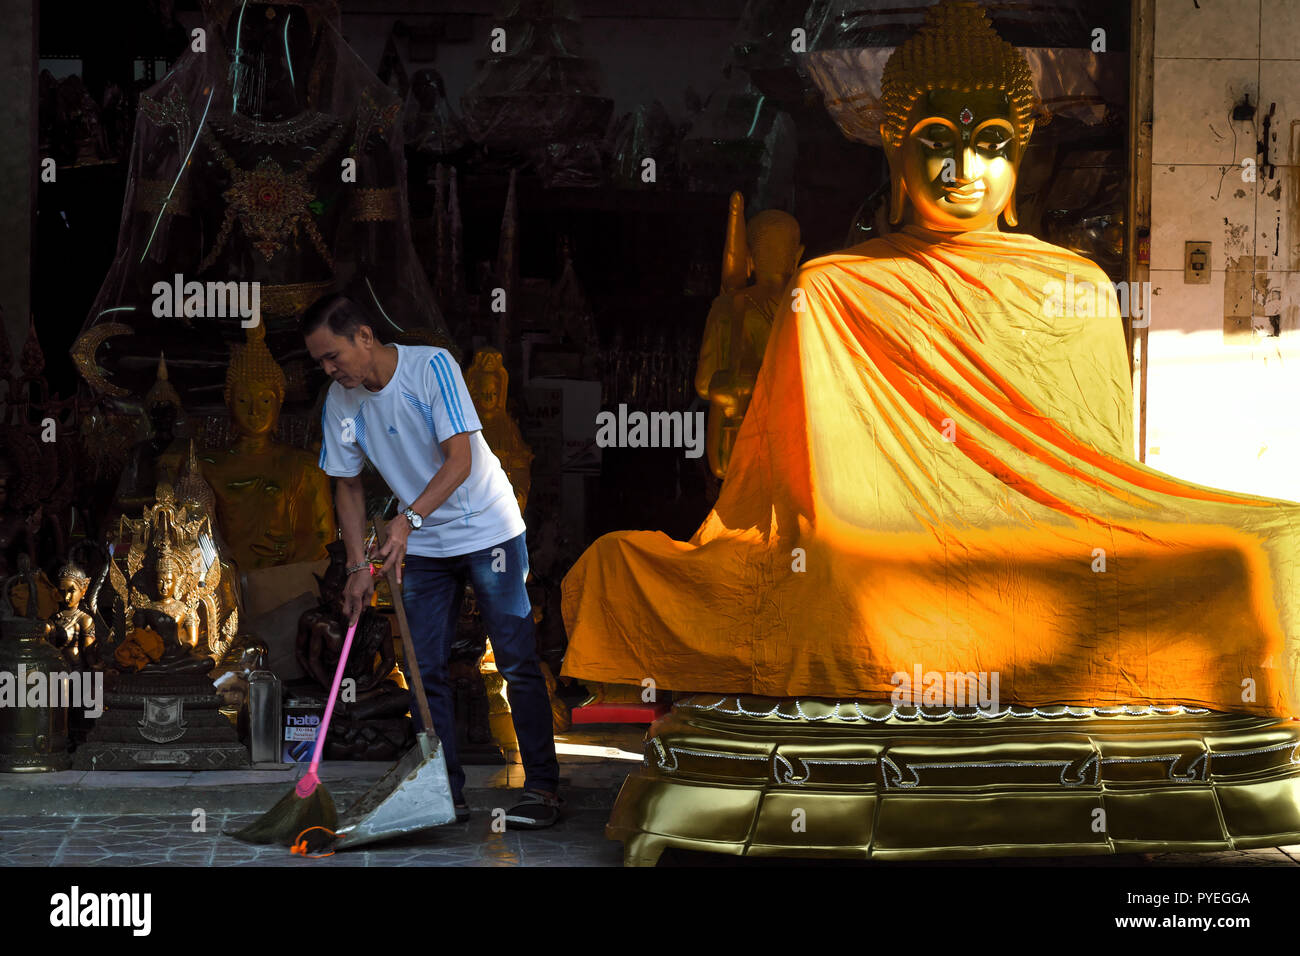 An employee of a shop selling Buddhist devotional objects in Bamrung Muang Rd., Bangkok, Thailand, sweeping the footpath in front of his shop - Stock Image